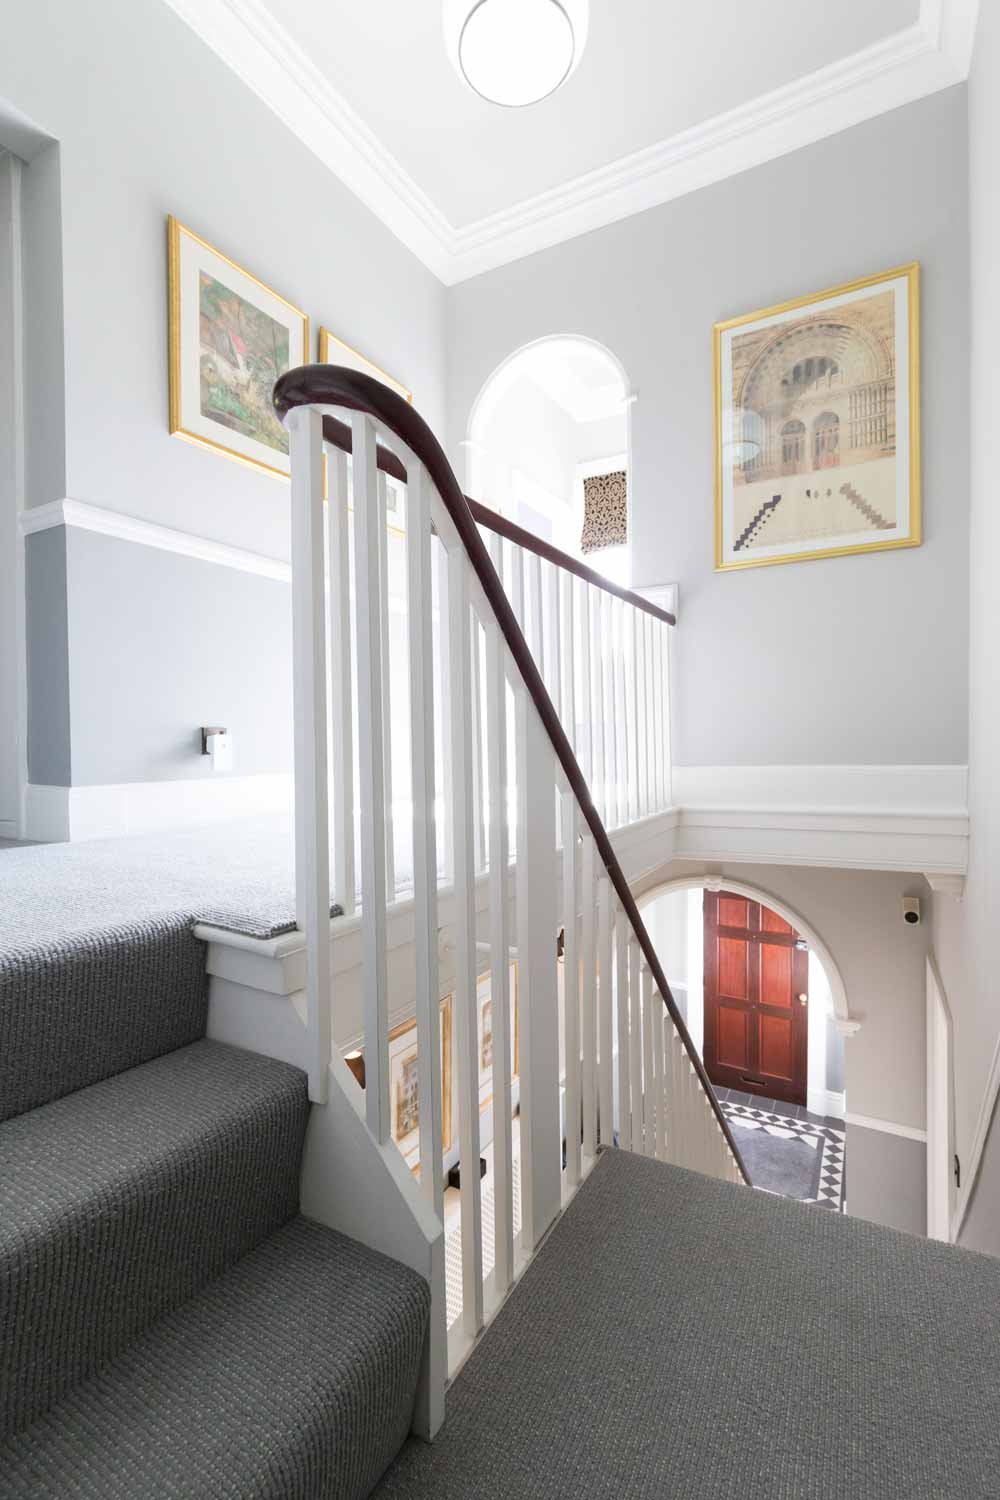 georgian balustrade handrail, staircase, carpet, dado rail, cornice, entrance hall